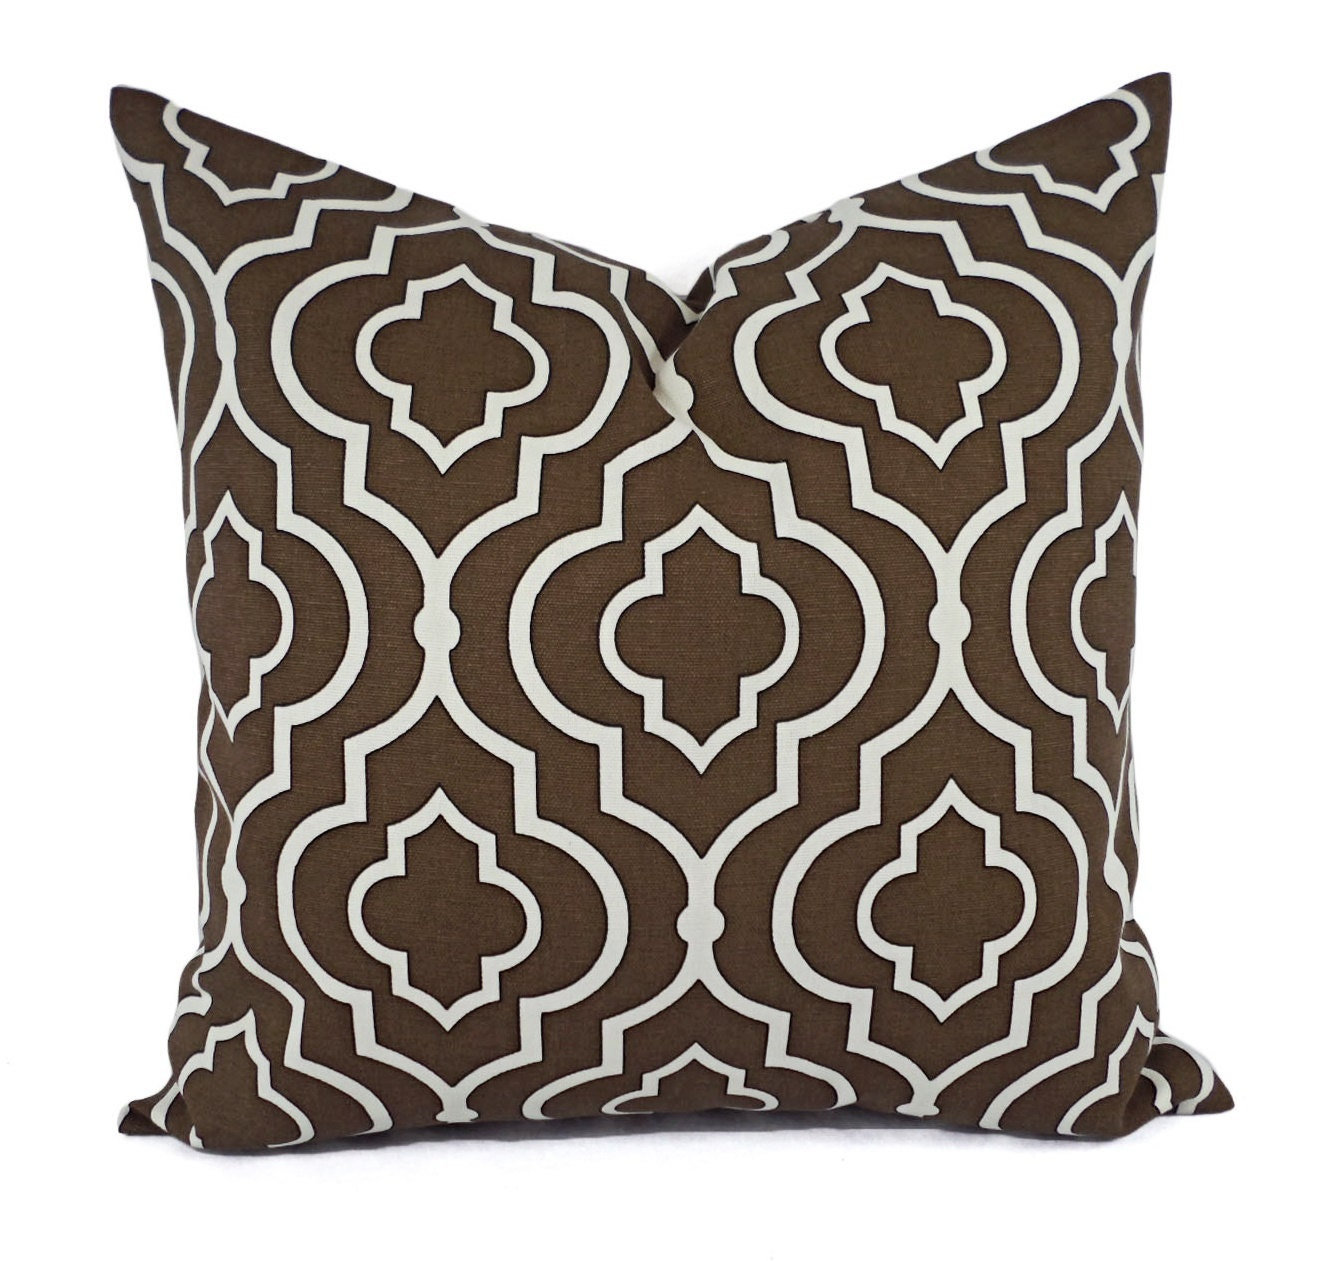 DIY No Sew Pillow Covers I've been itching to update the pillows in my living room, and I came across a dilemma I'm wondering if you can relate to Why is it so hard to find pillow .